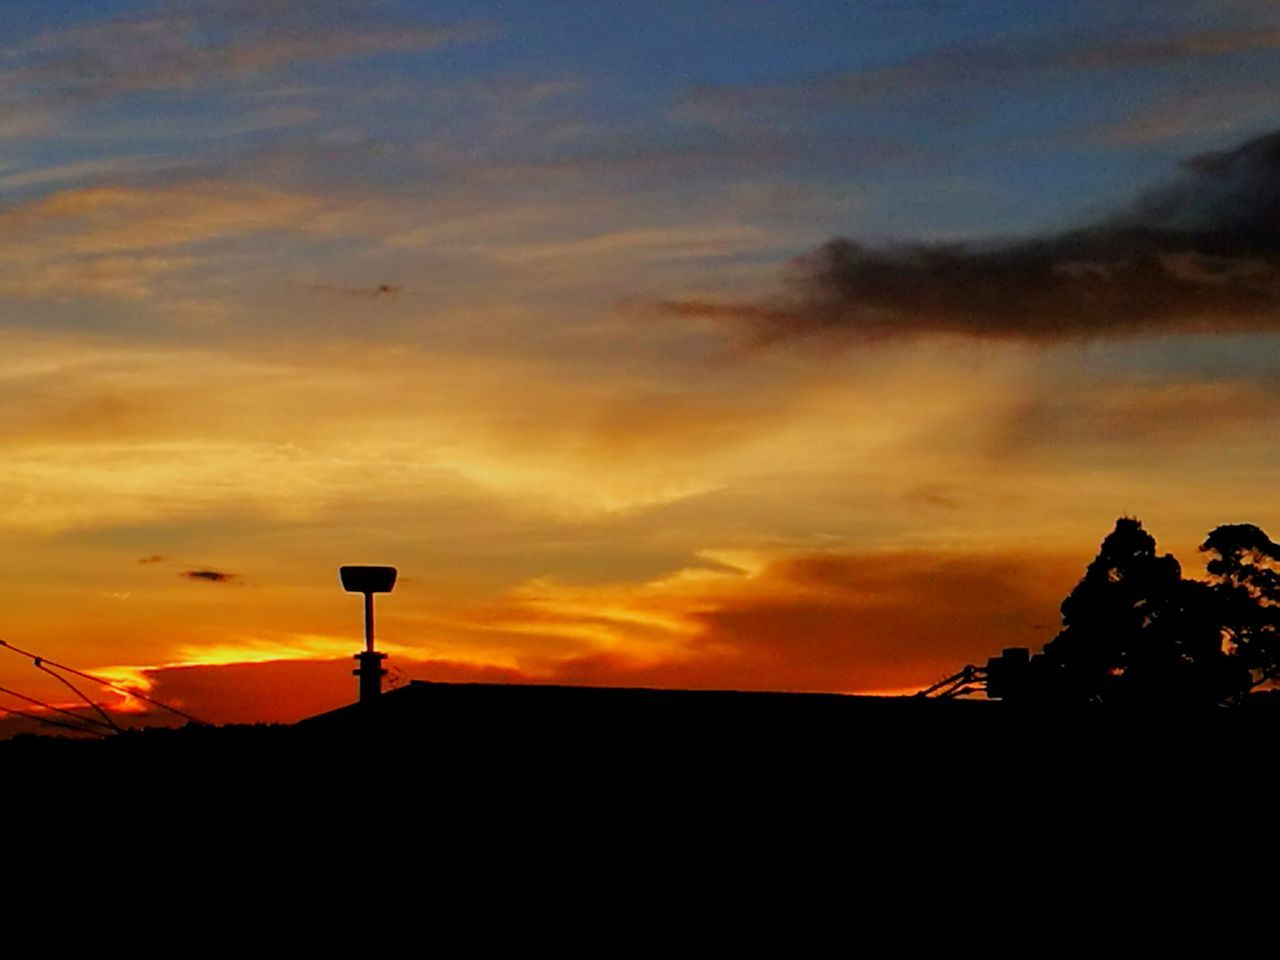 sunset, silhouette, orange color, sky, cloud - sky, nature, beauty in nature, no people, outdoors, low angle view, scenics, architecture, day